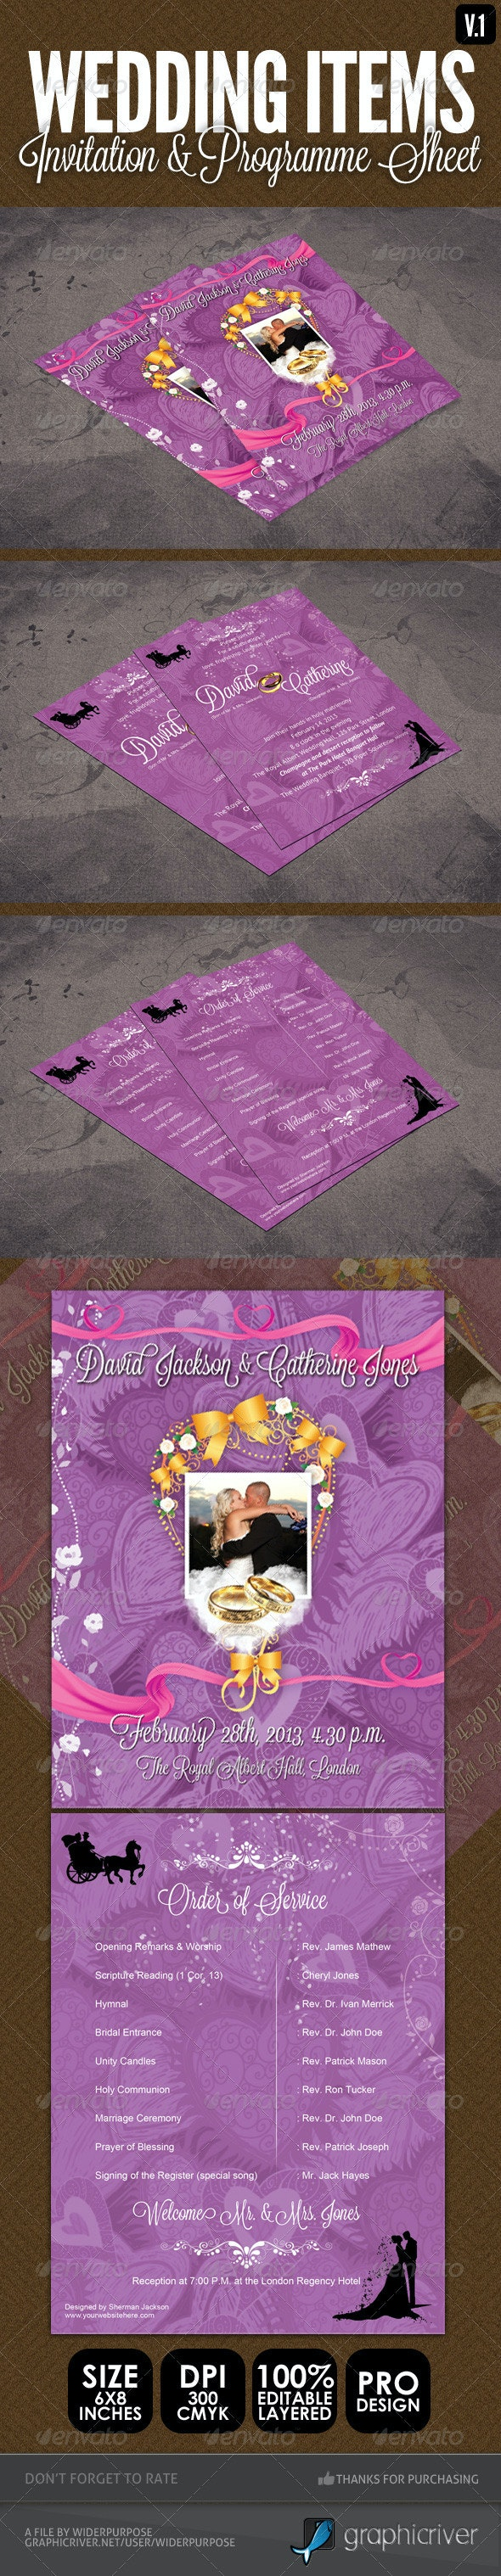 Wedding Items - Programme Sheet & Order of Service - Weddings Cards & Invites